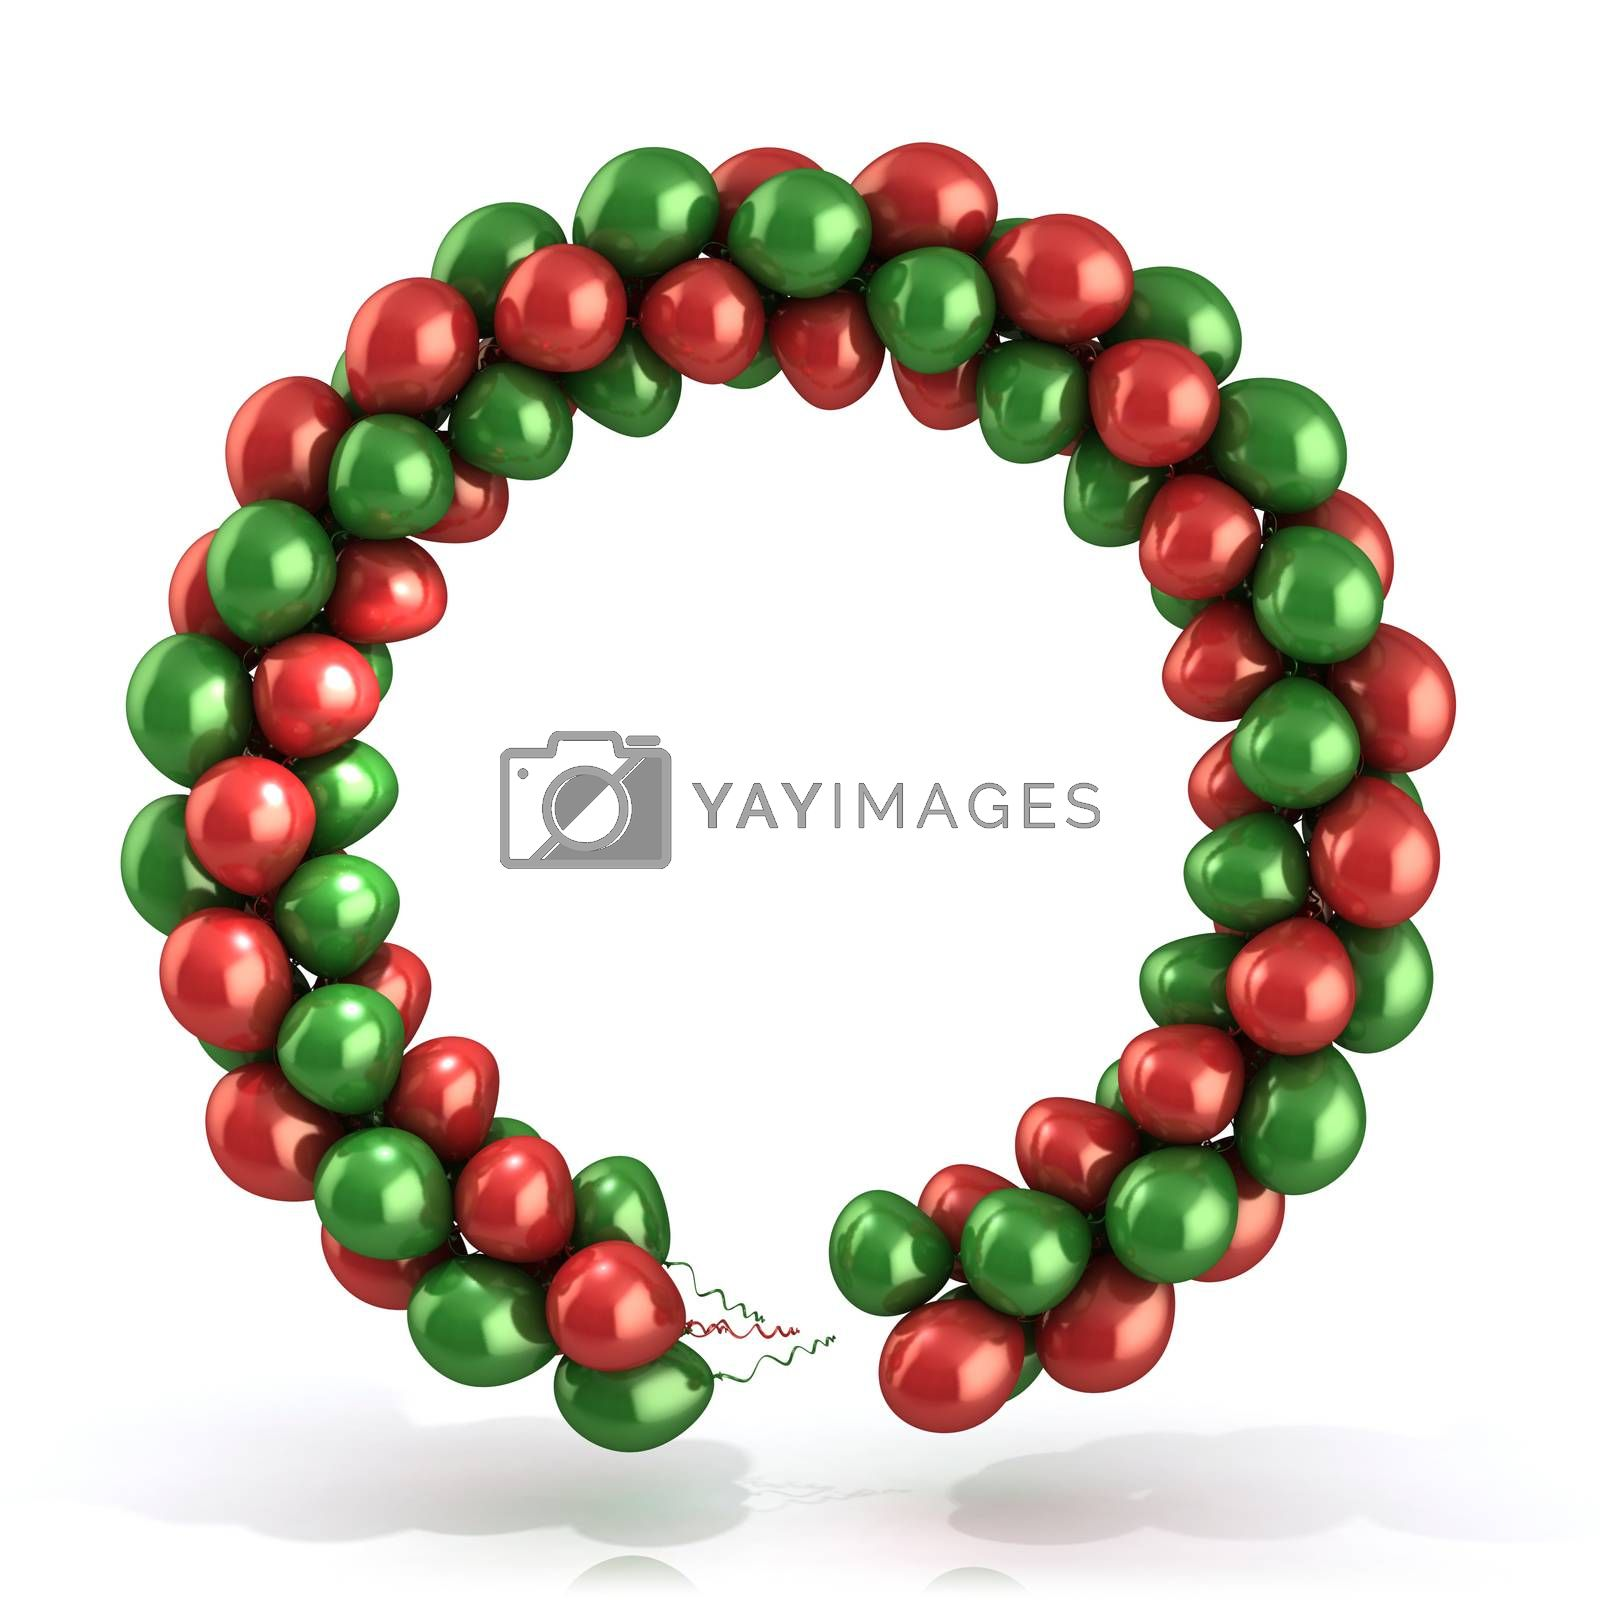 Red and green balloons wreath, isolated on white